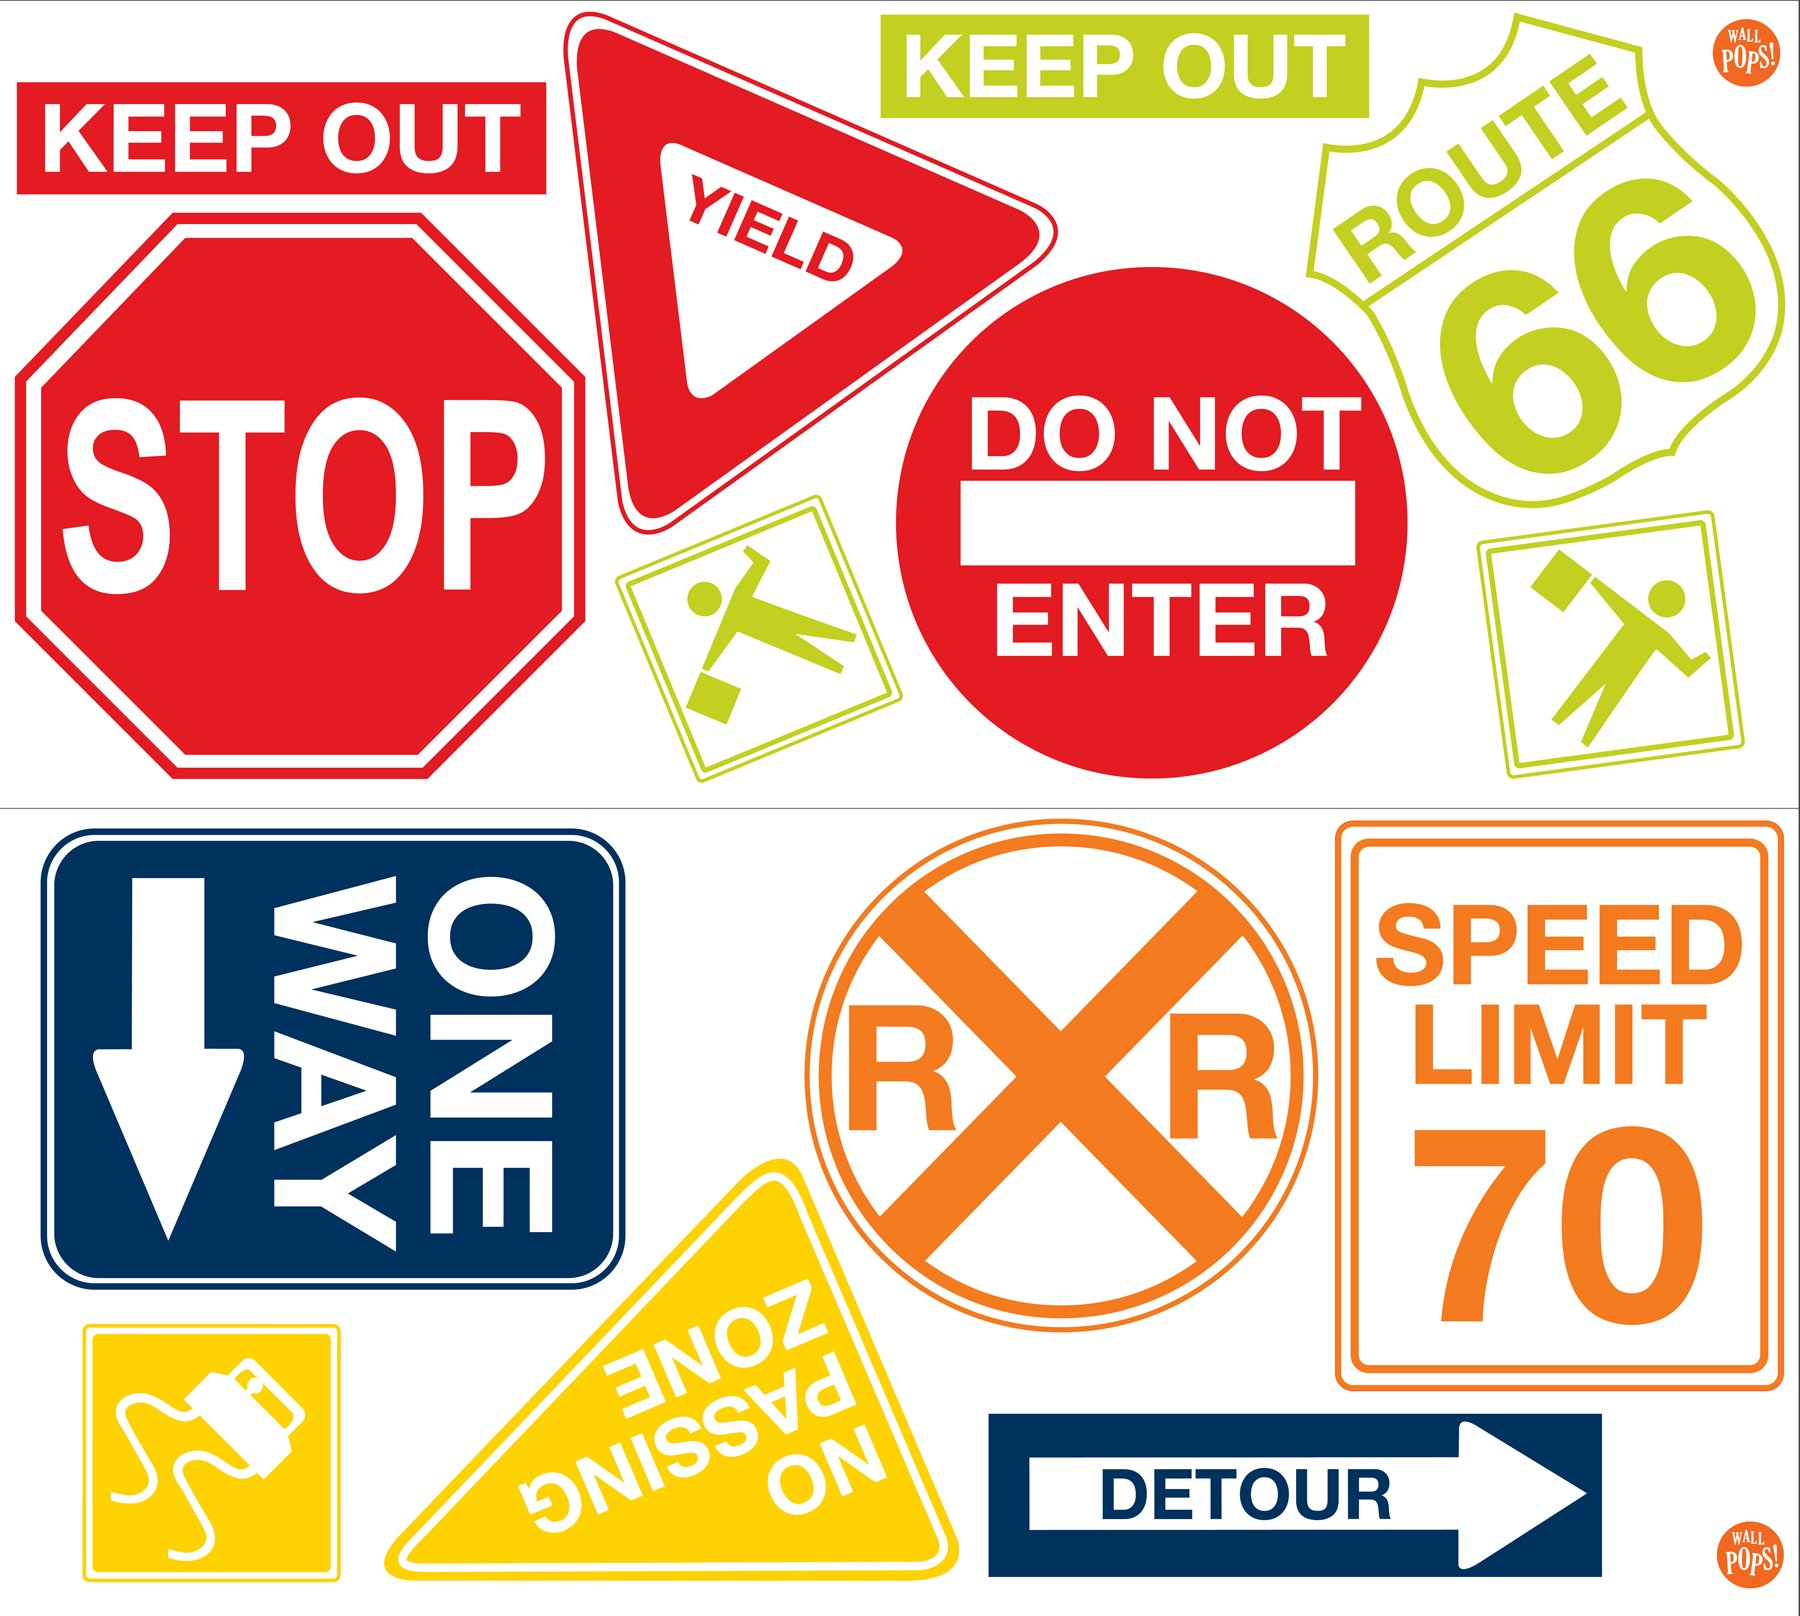 Wall Pops  WPK0617 Road Signs Wall Decals,  17. 25-inch by 39-inch, Two sheets by Wall Pops (Image #4)